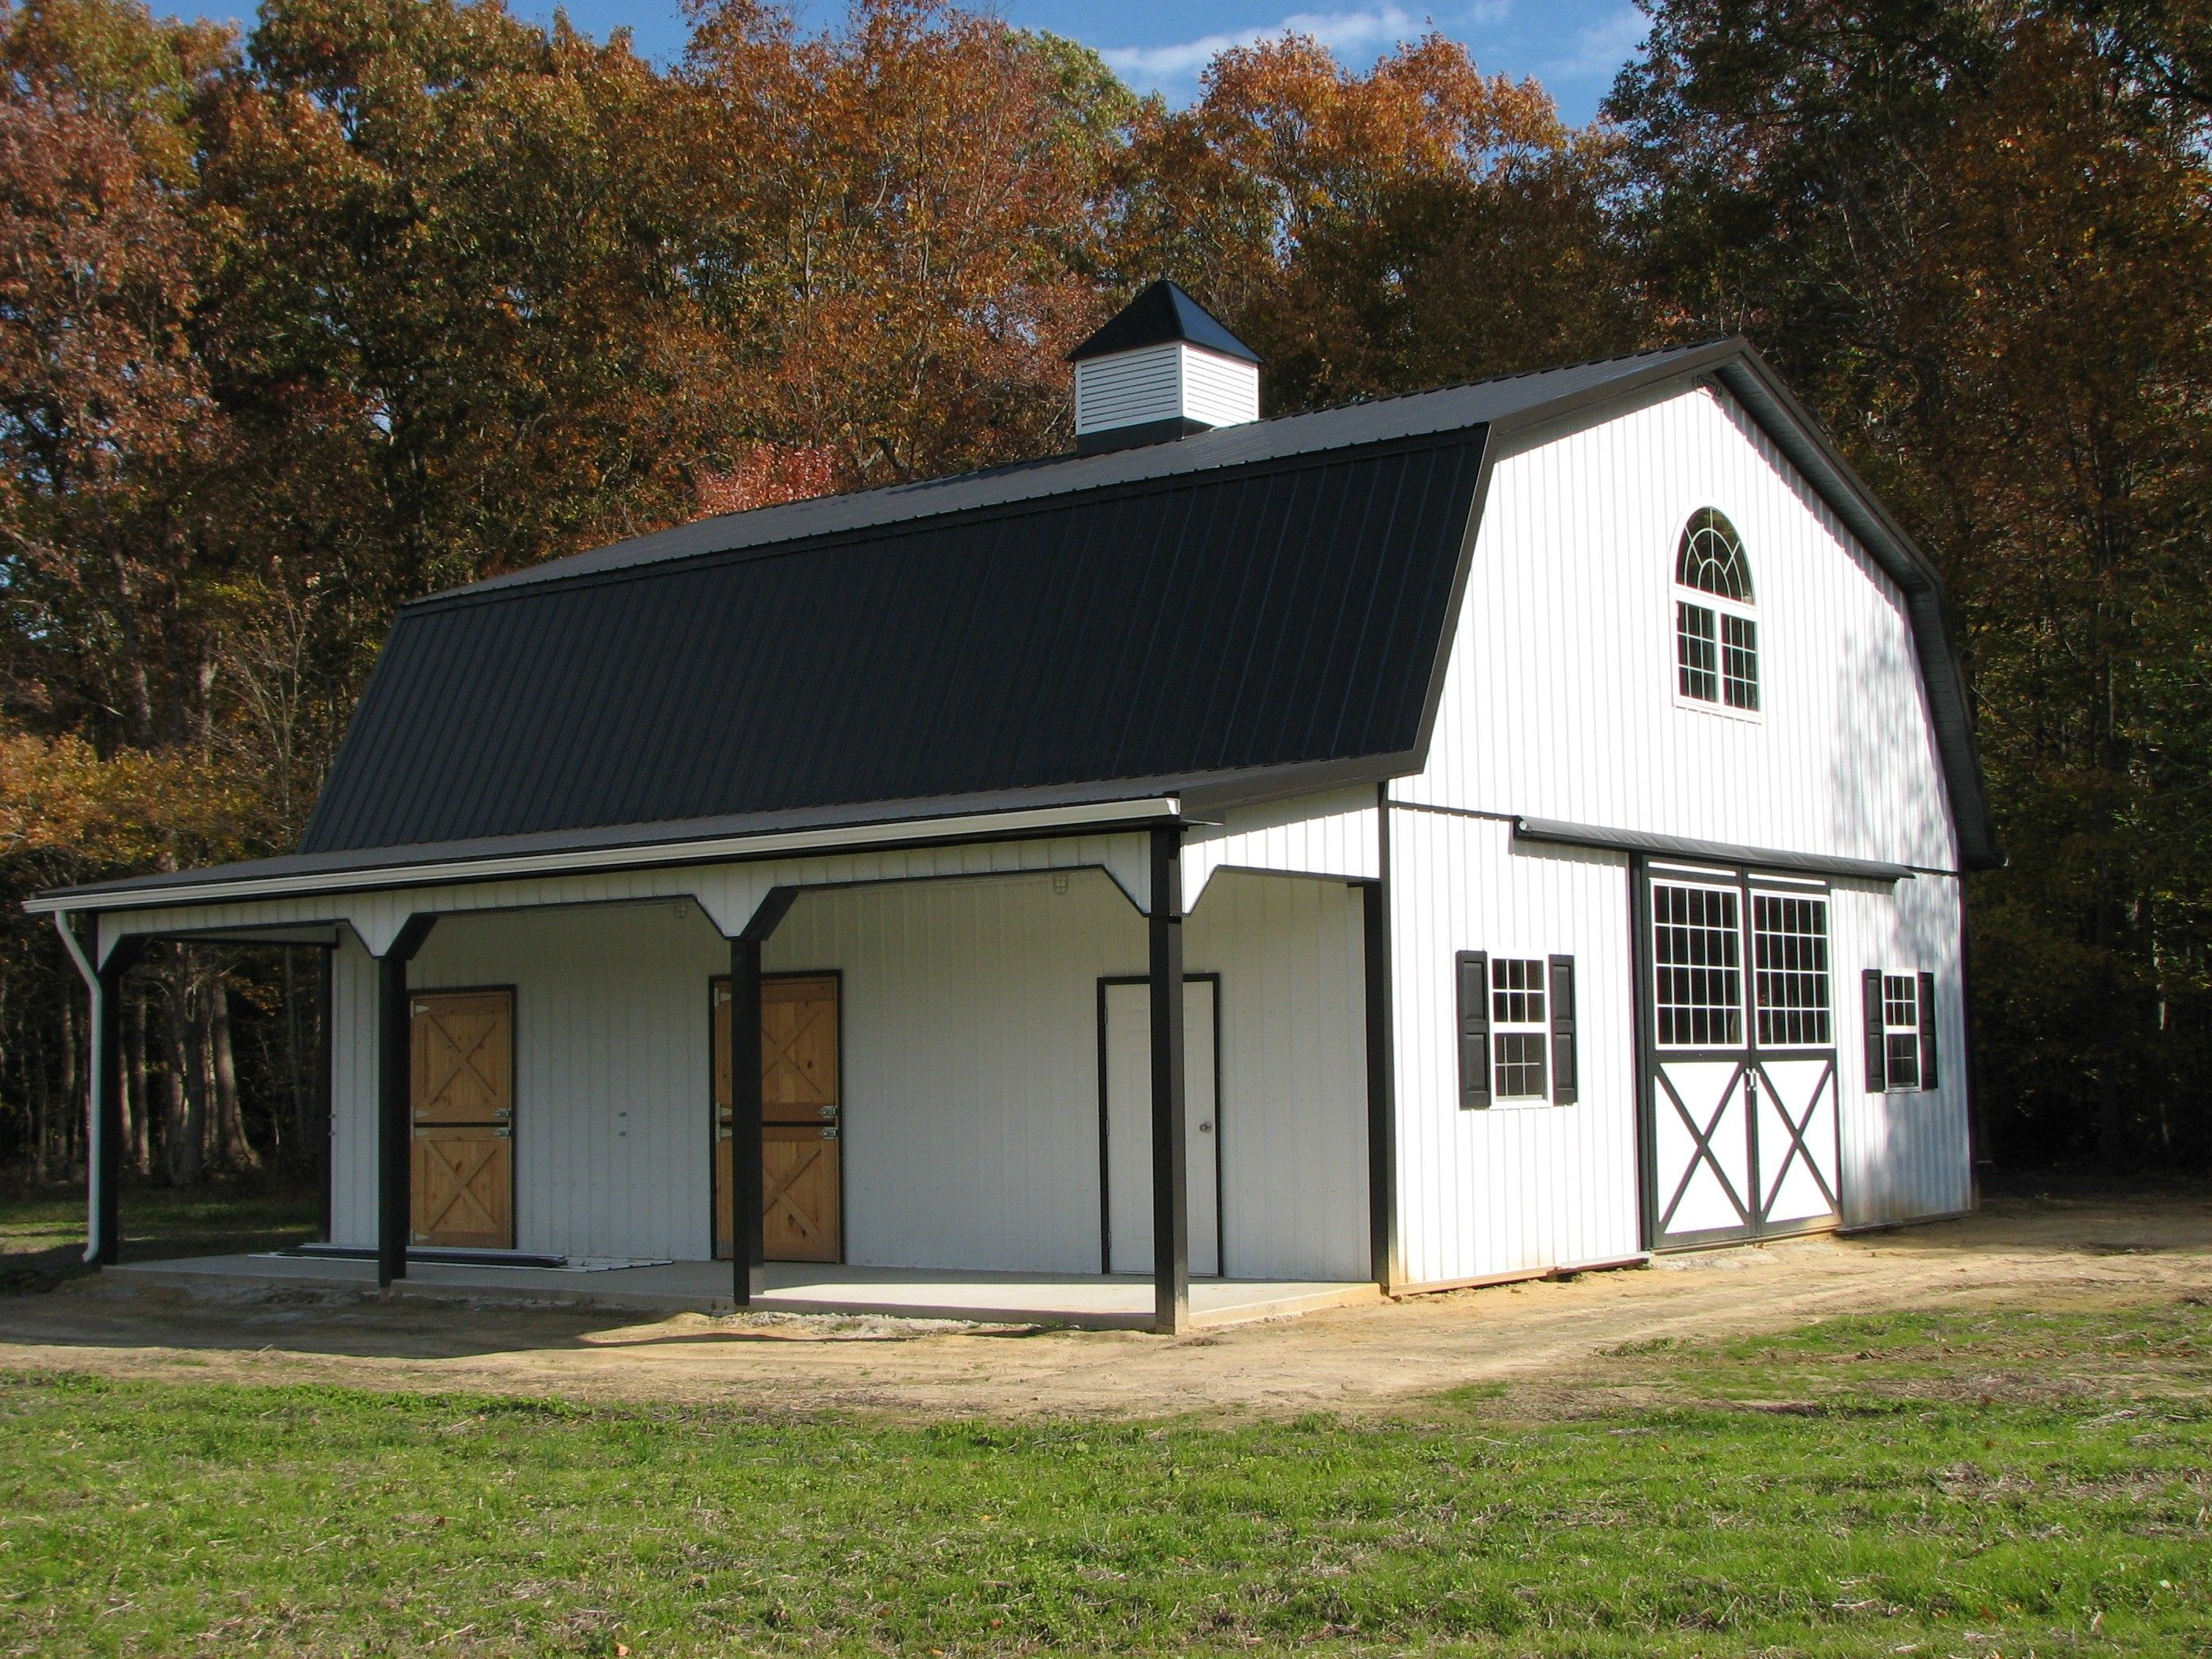 Flexible and adaptable pole barn house plans for you Metal pole barn homes plans